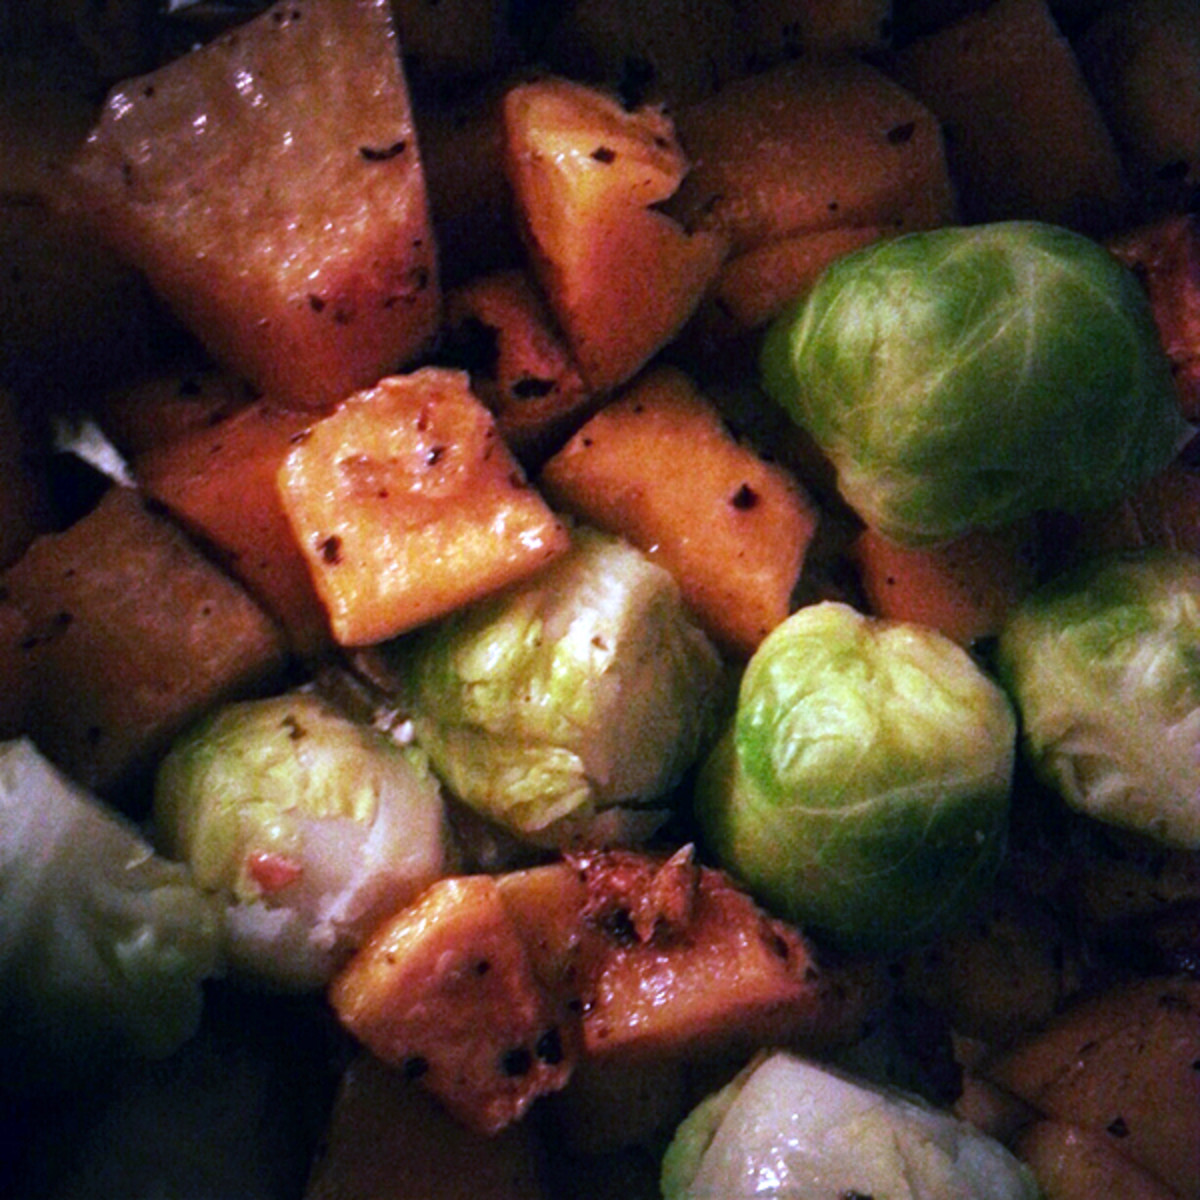 Brussel sprouts and squash